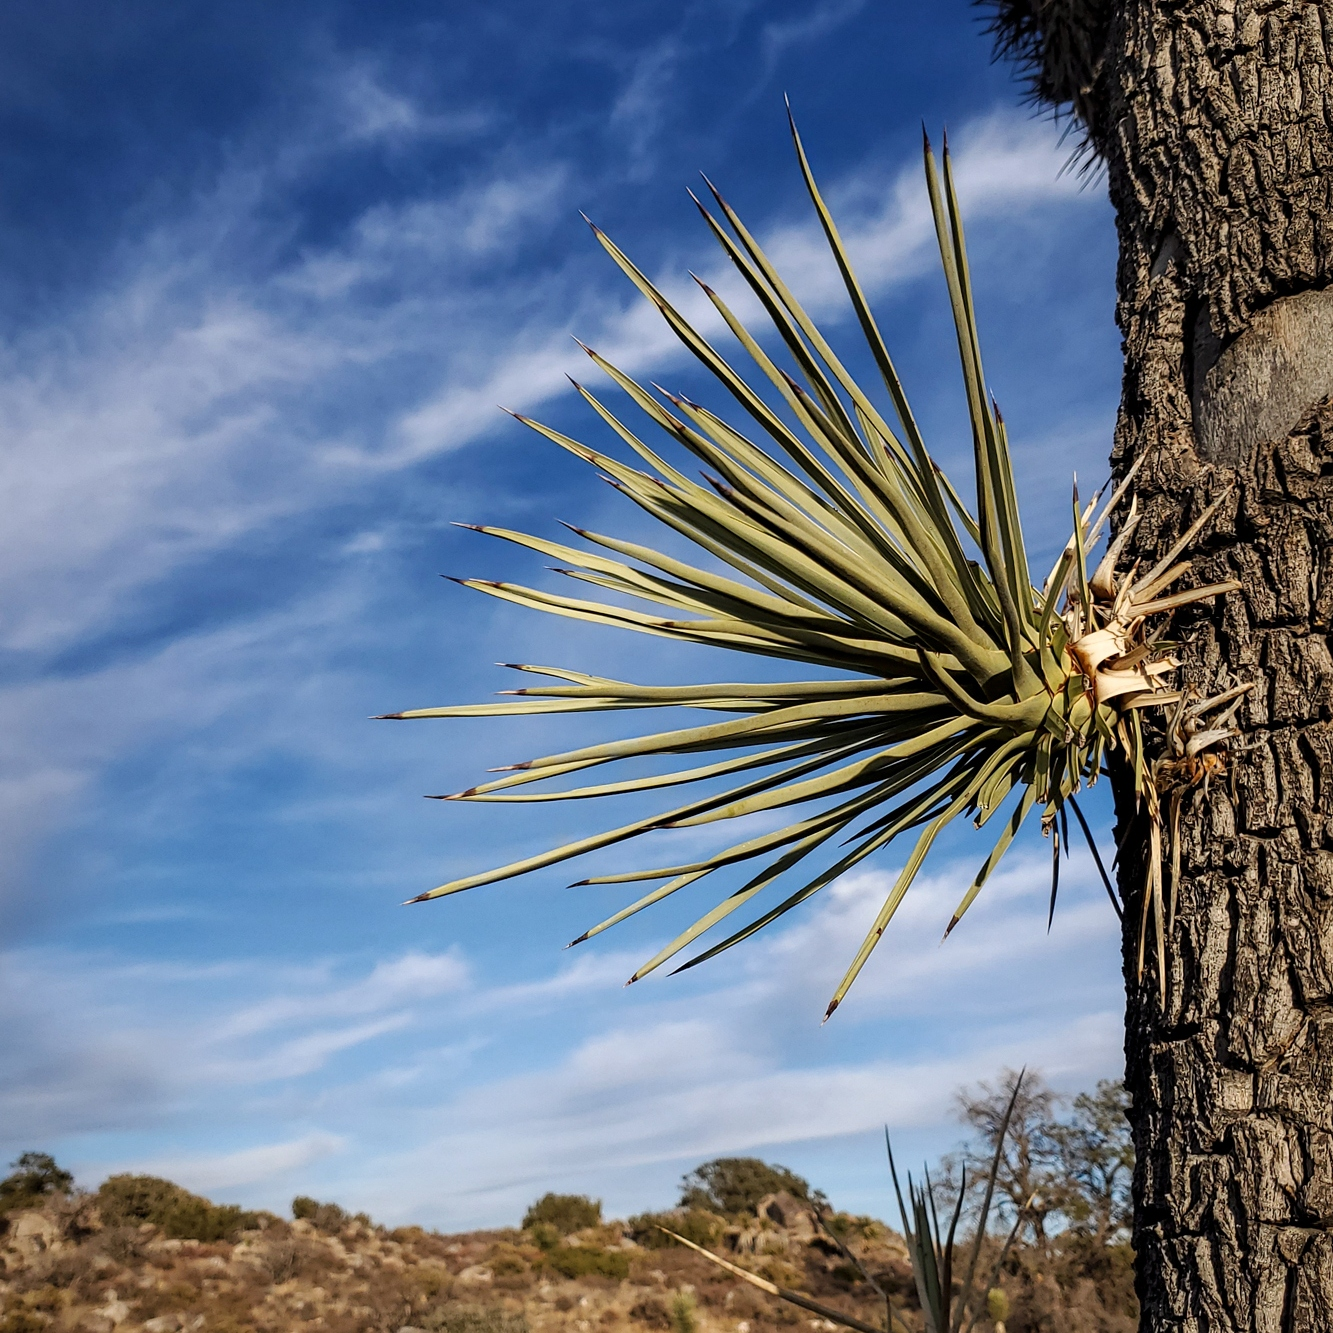 a Joshua Tree growing a new branch out of the middle of its trunk